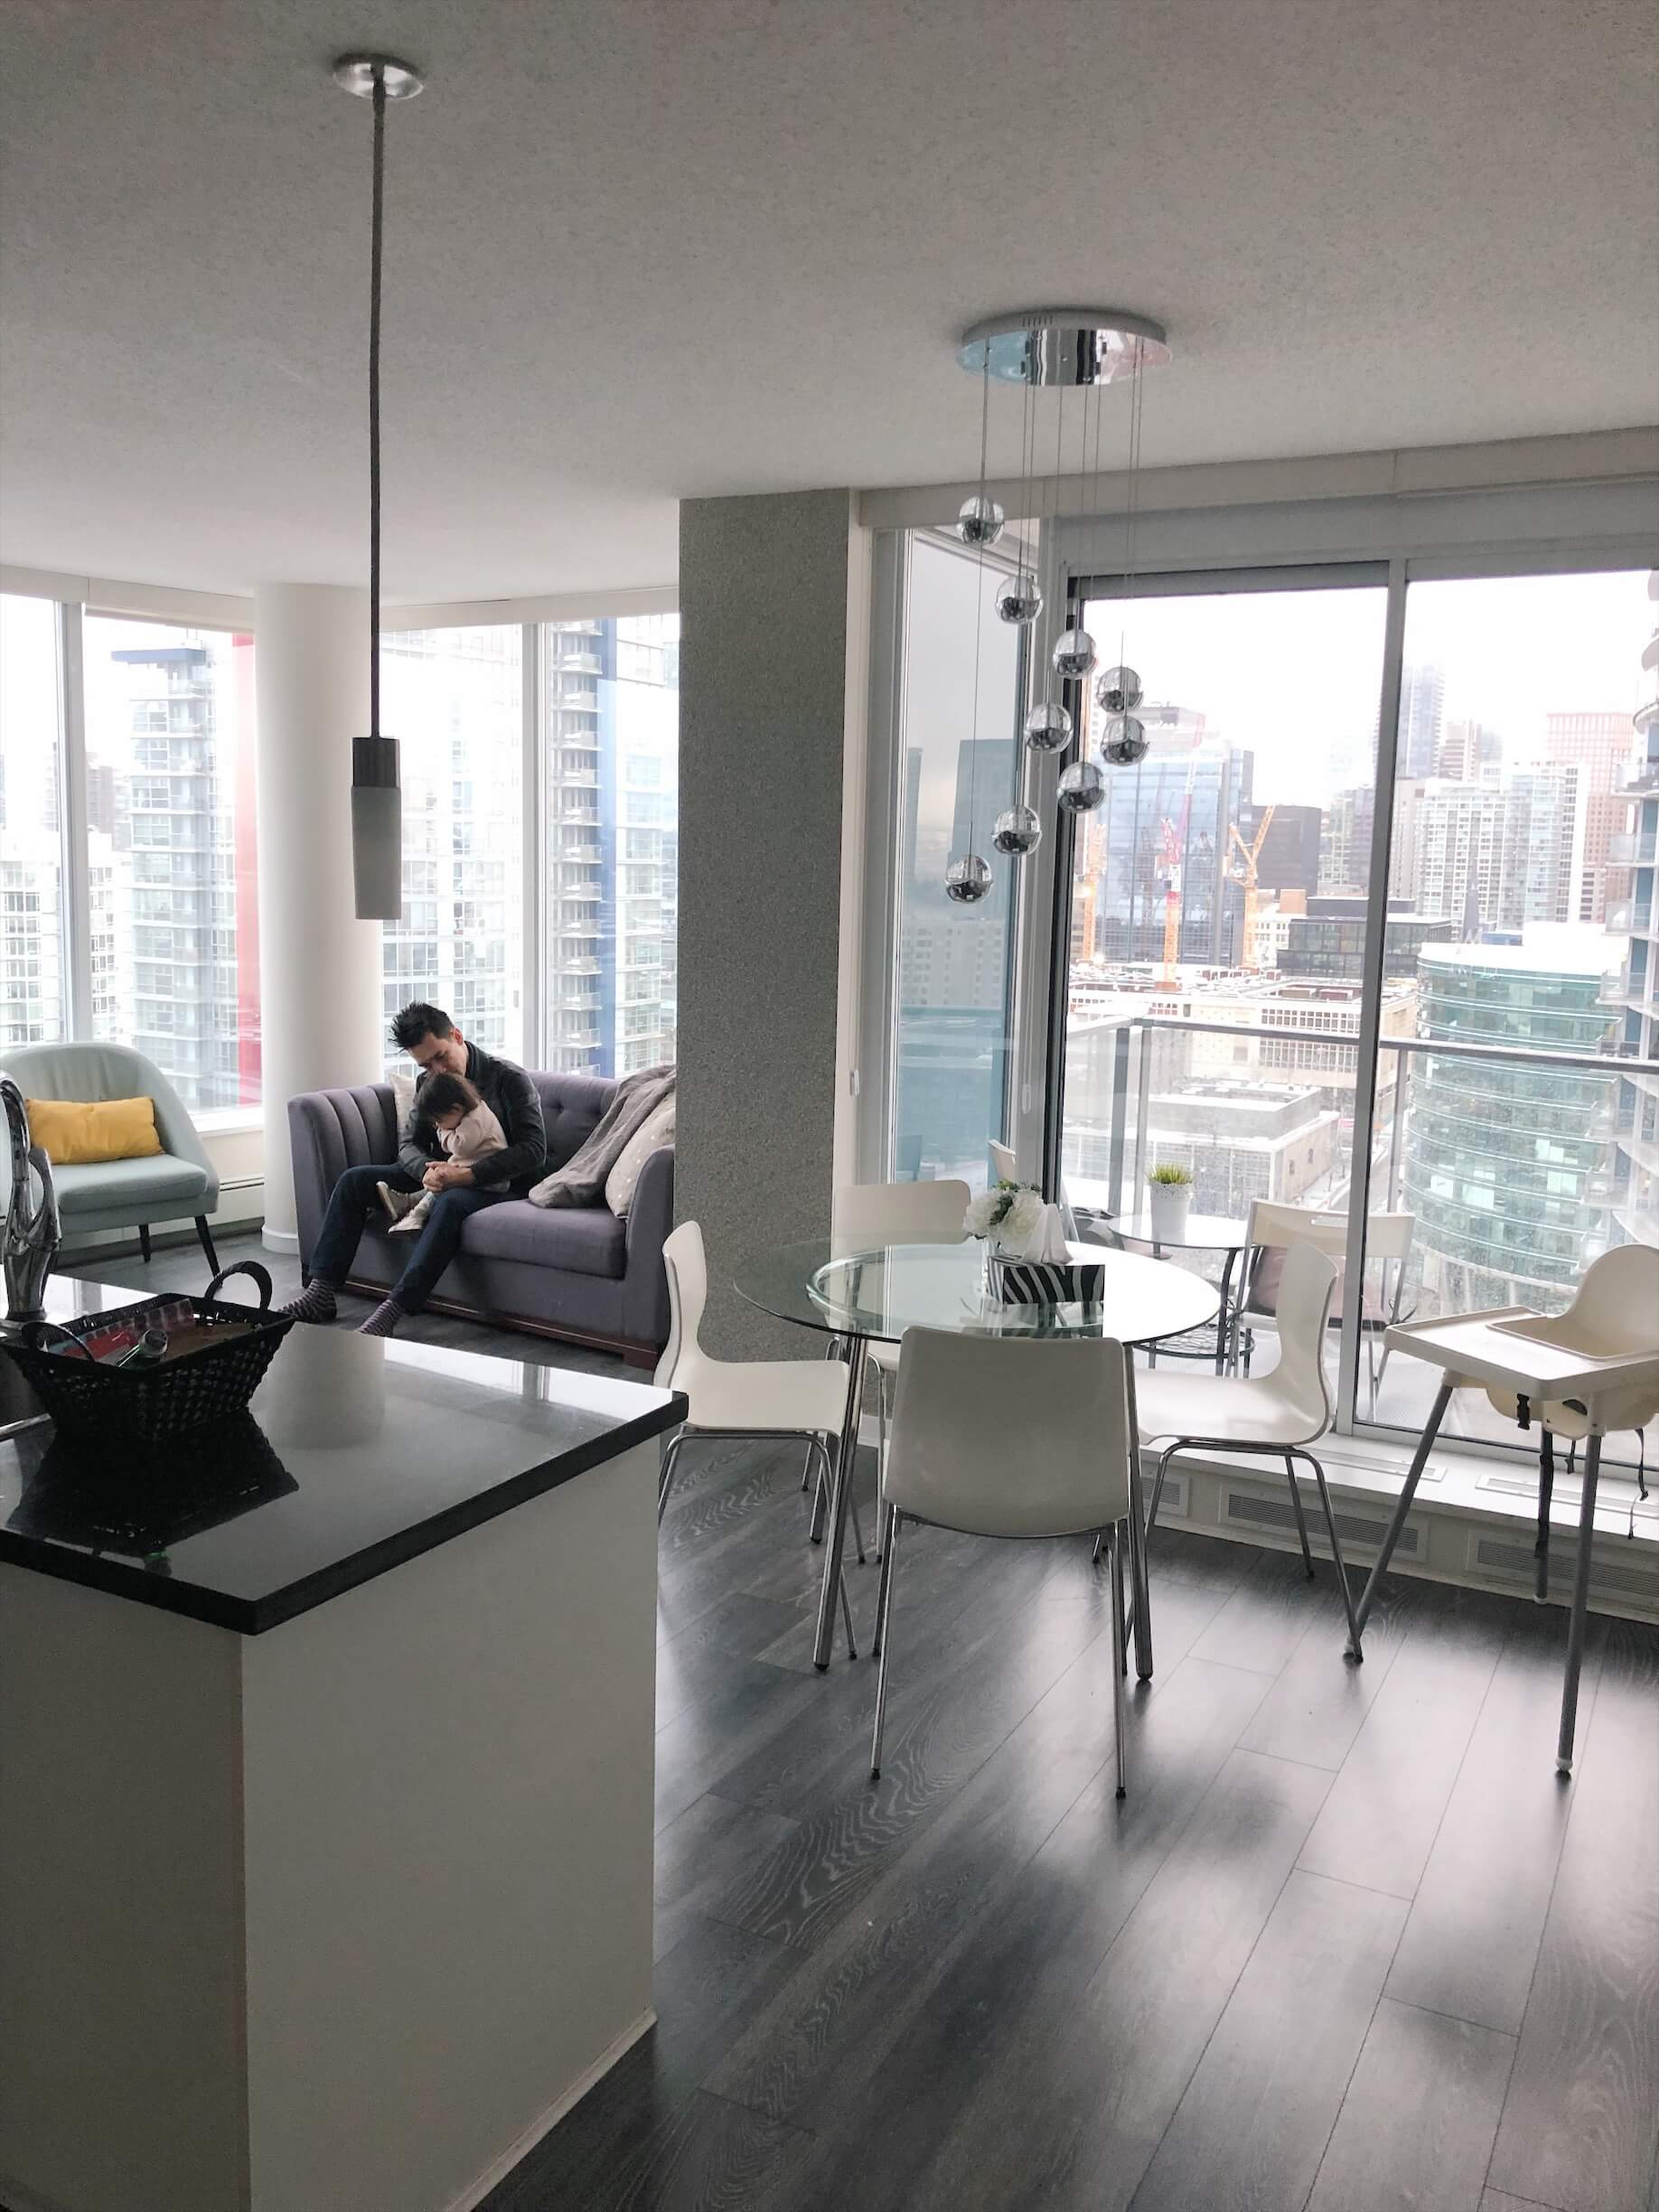 Vancouver baby friendly airbnb rental